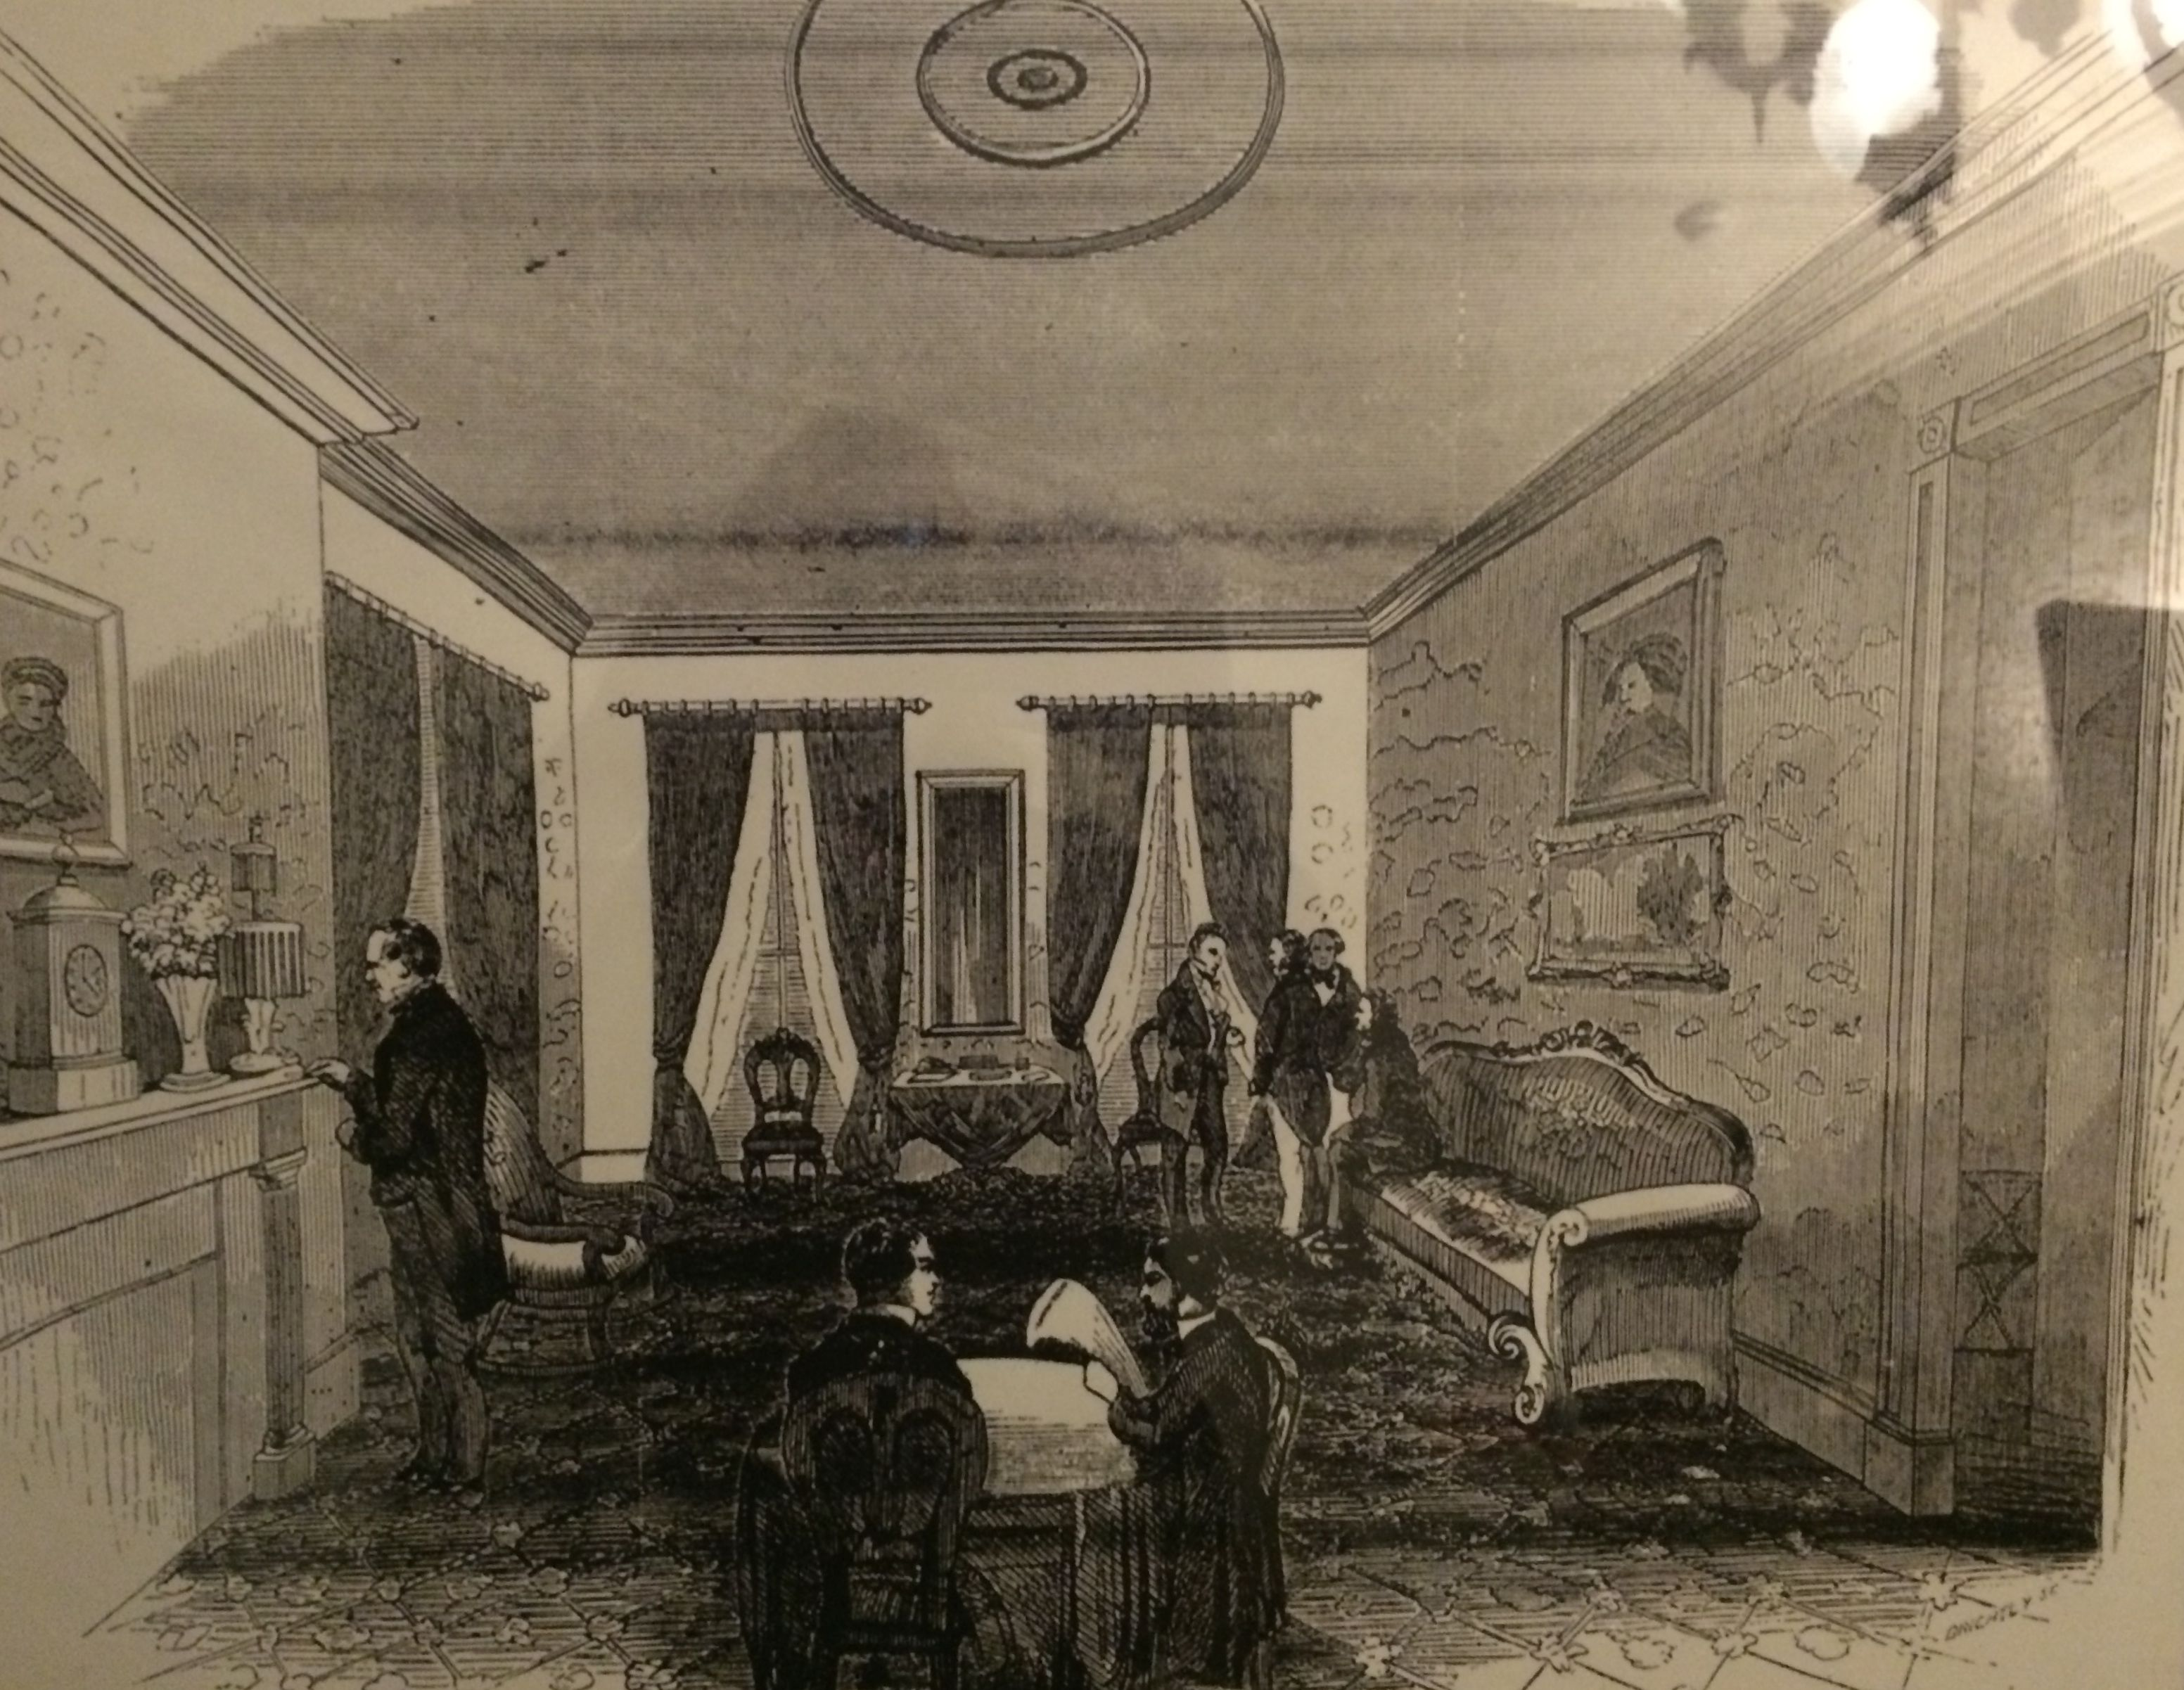 Period illustration of the dining room